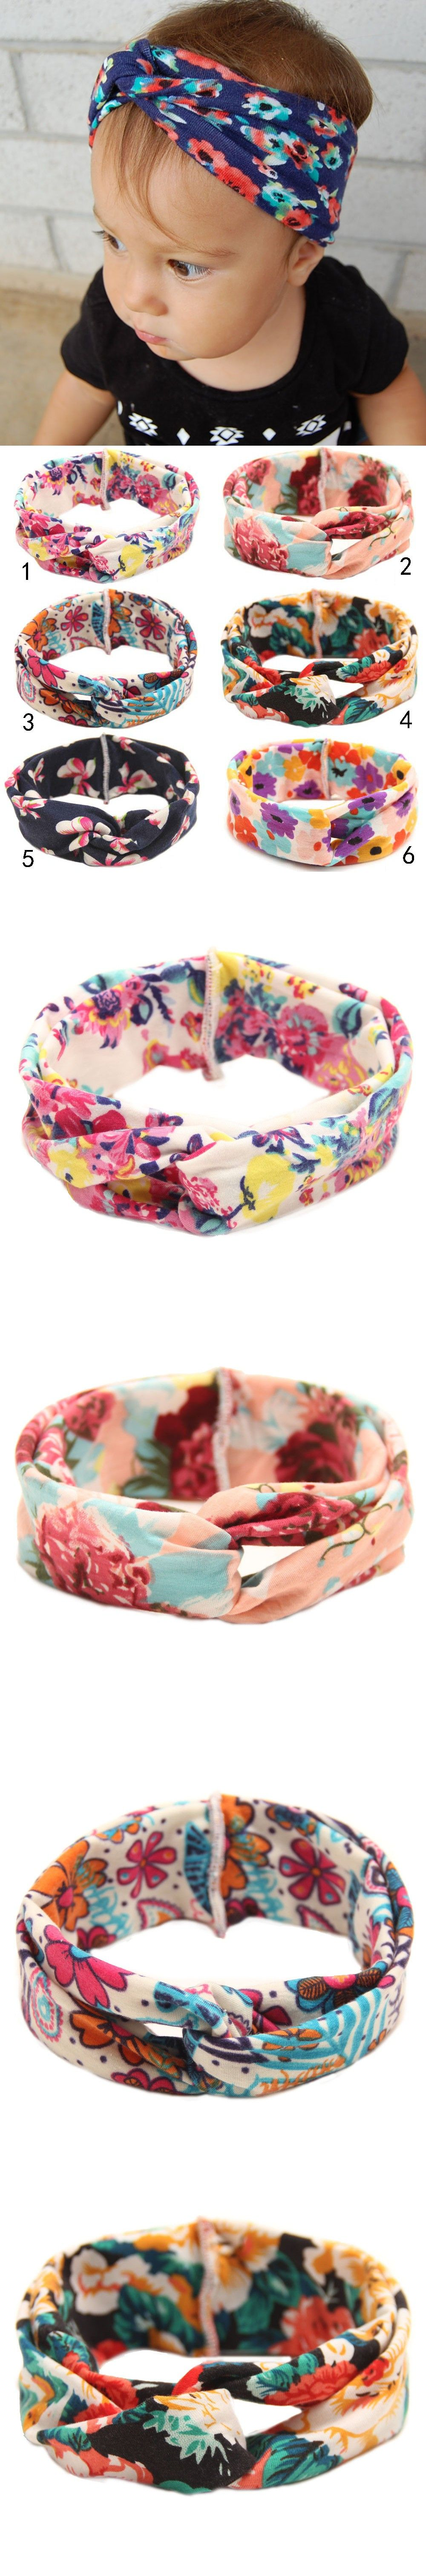 Be best hair accessories for baby - Twisted Newborn Baby Headband Printed Children Baby Girls Hair Accessories Artificial Cross Turban Hairband Headwraps